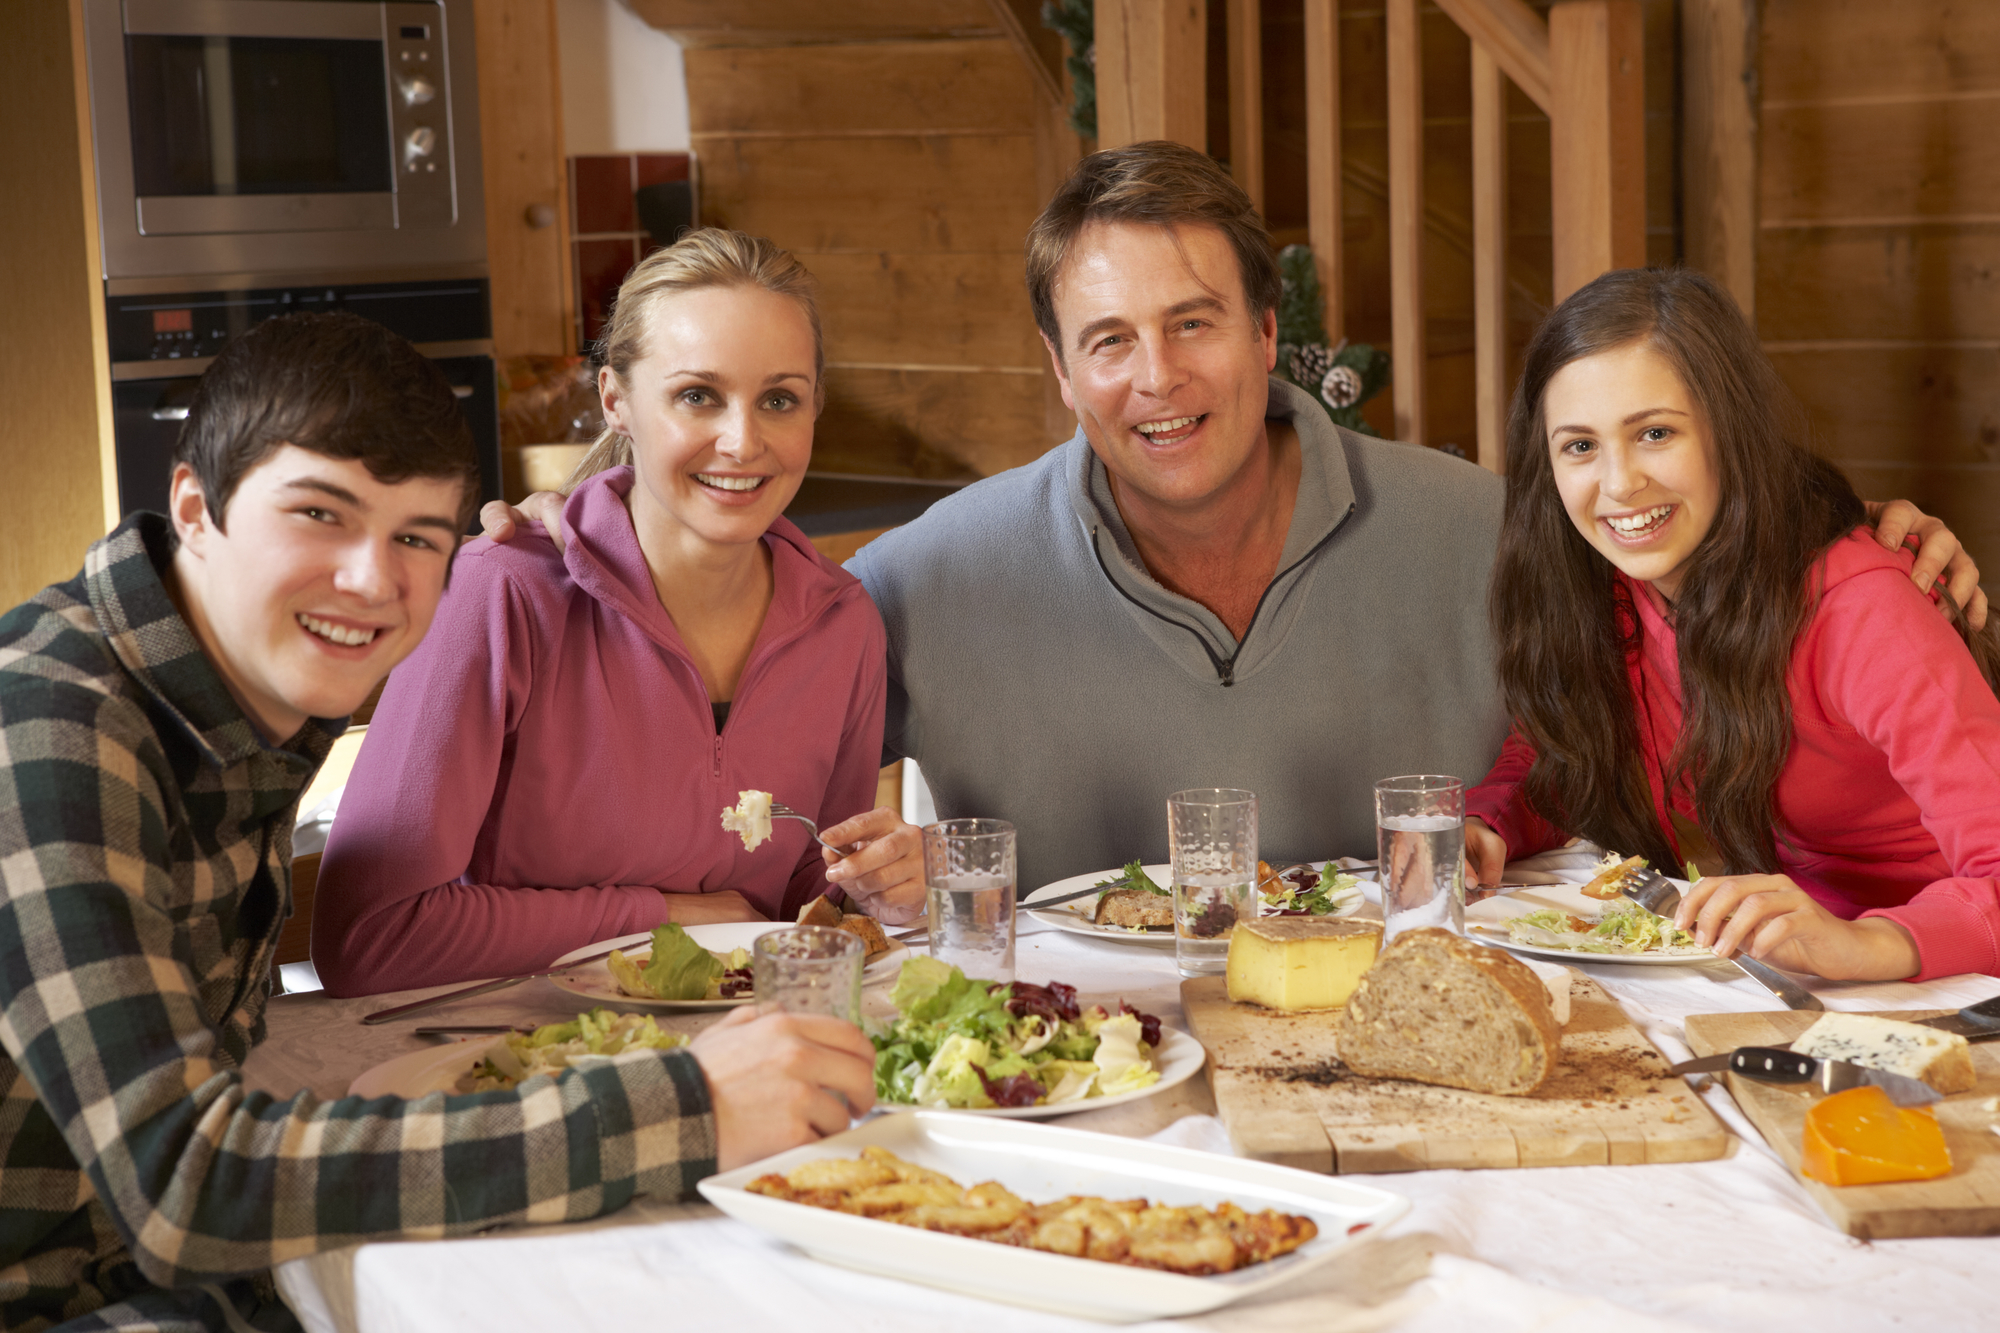 Family With Teenagers Enjoying Meal Together